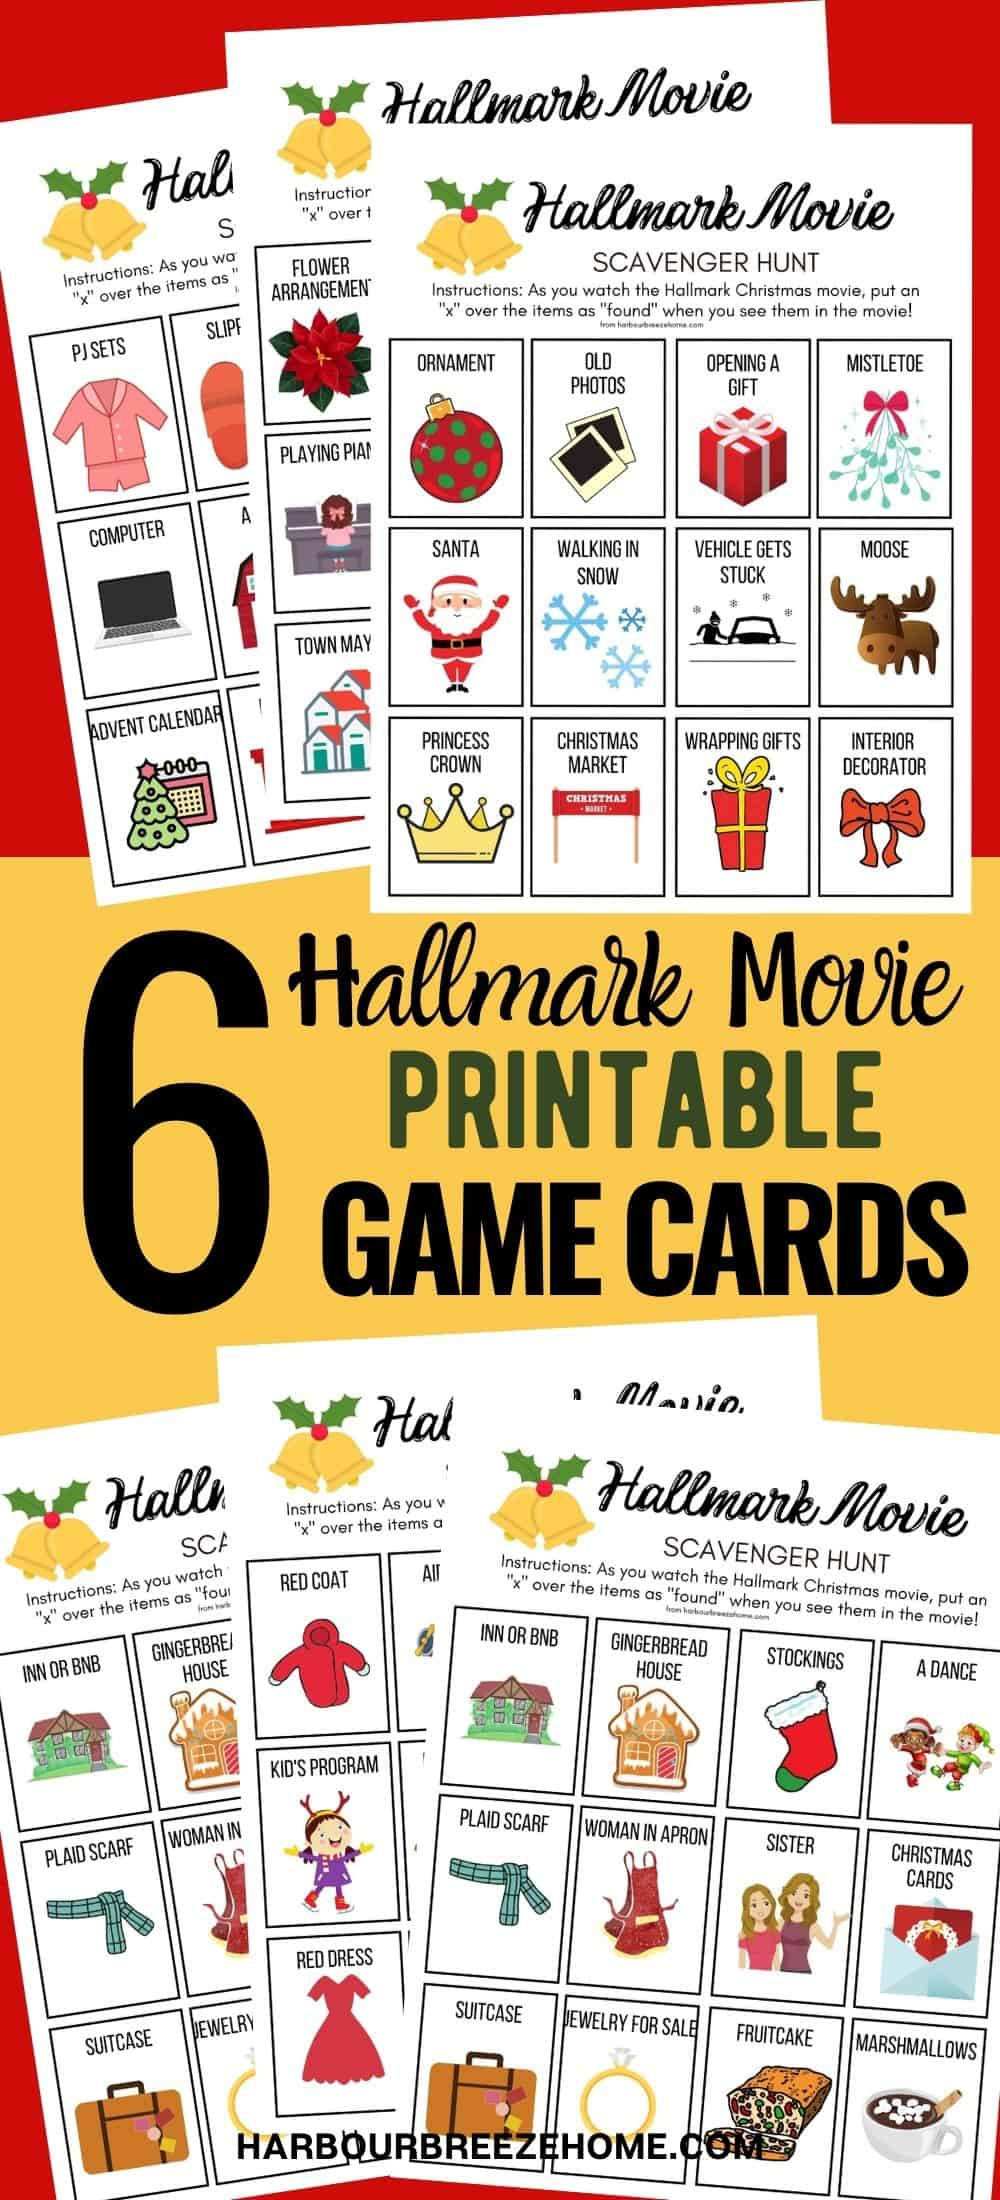 Hallmark Movie Christmas Party Game Printable Scavenger Hunt Game Cards